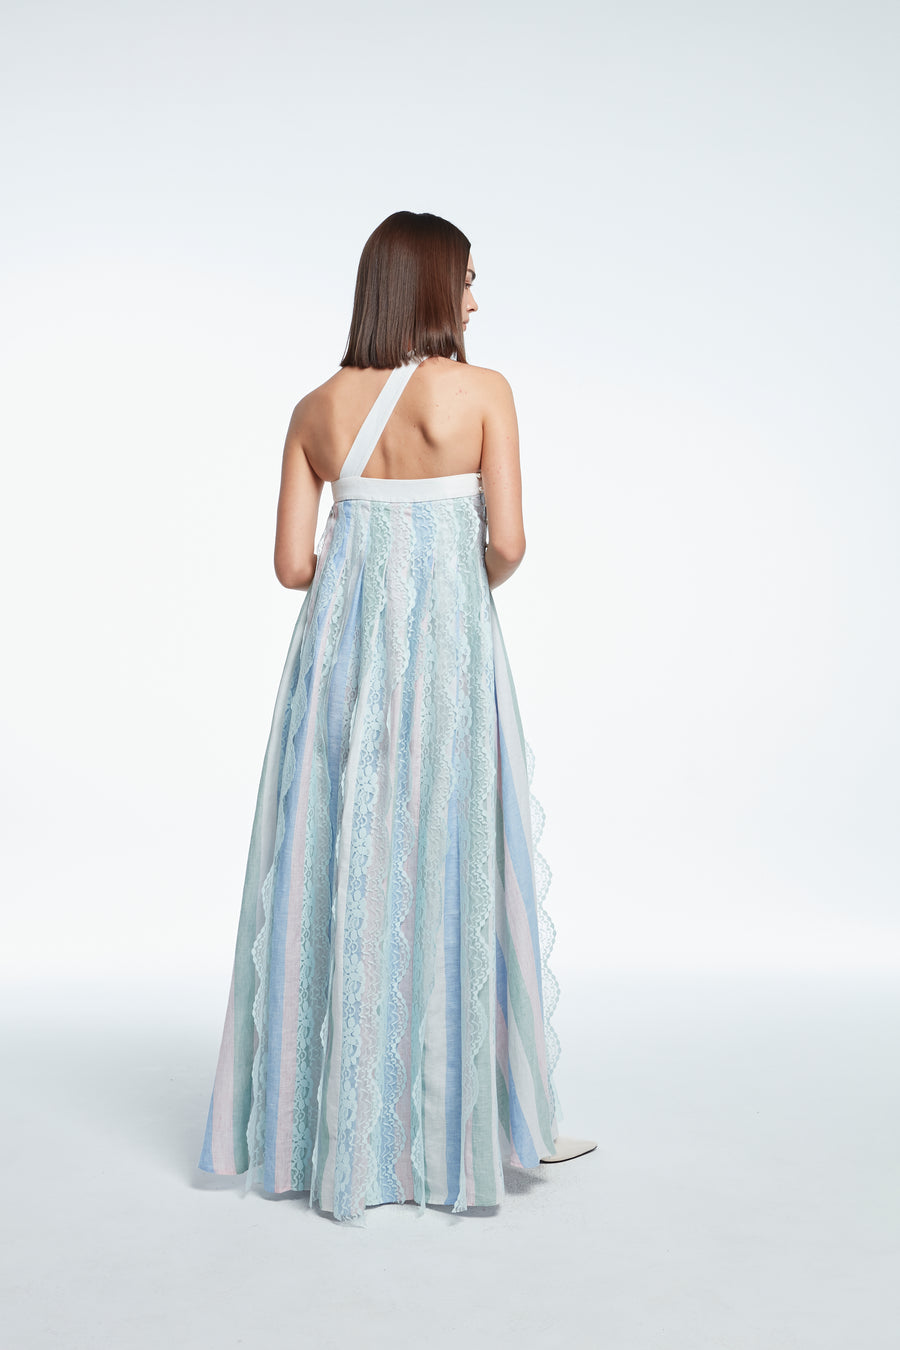 One-shoulder long dress with lace trim